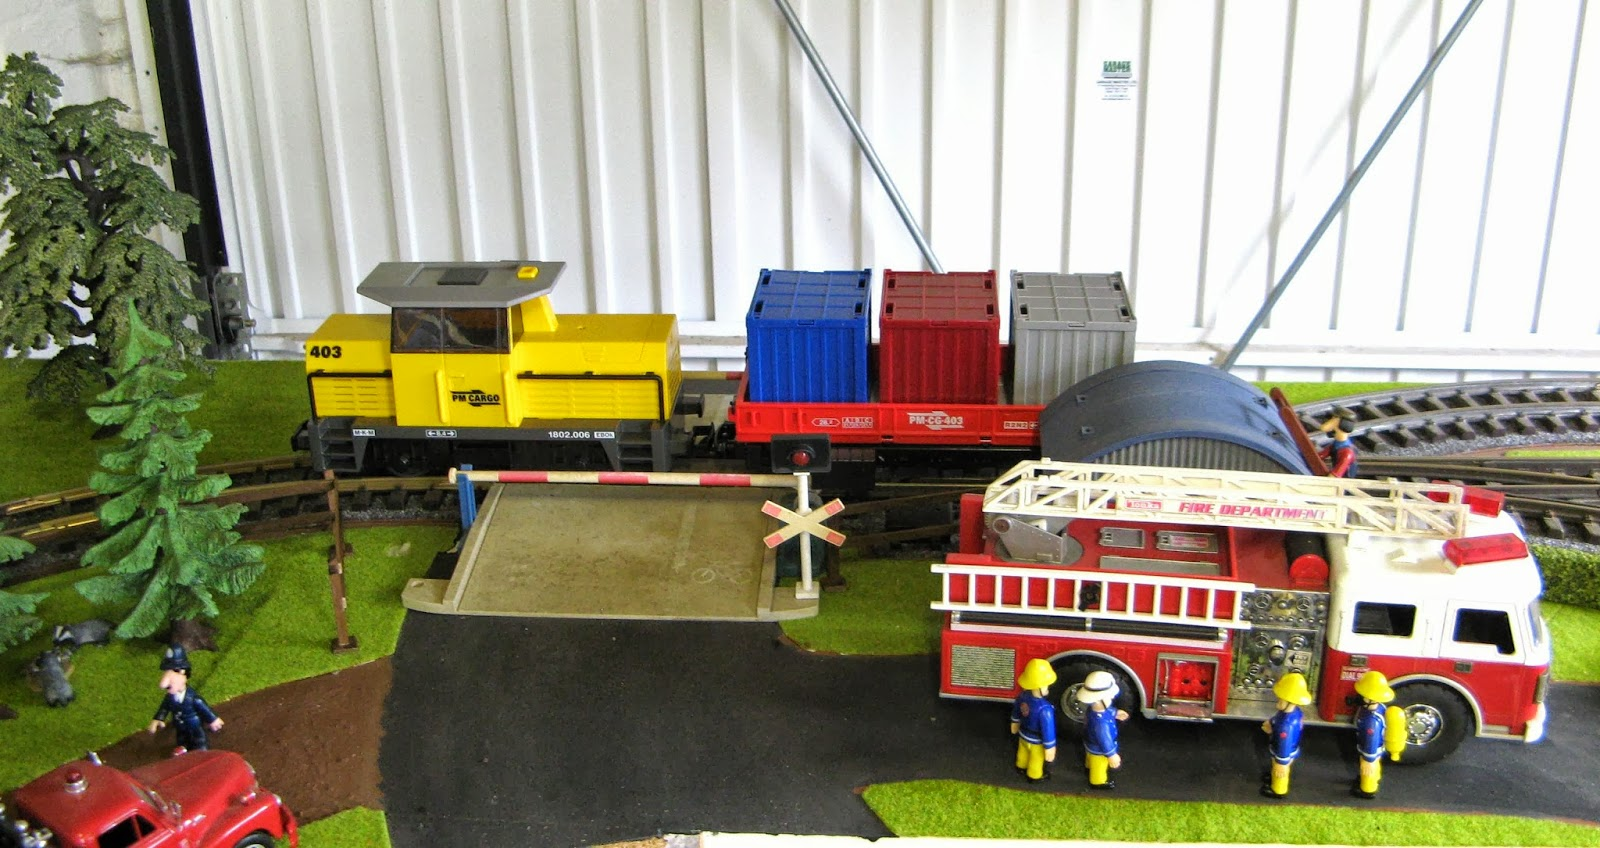 Central Coast Railroad Festival |Playmobil Train Layouts